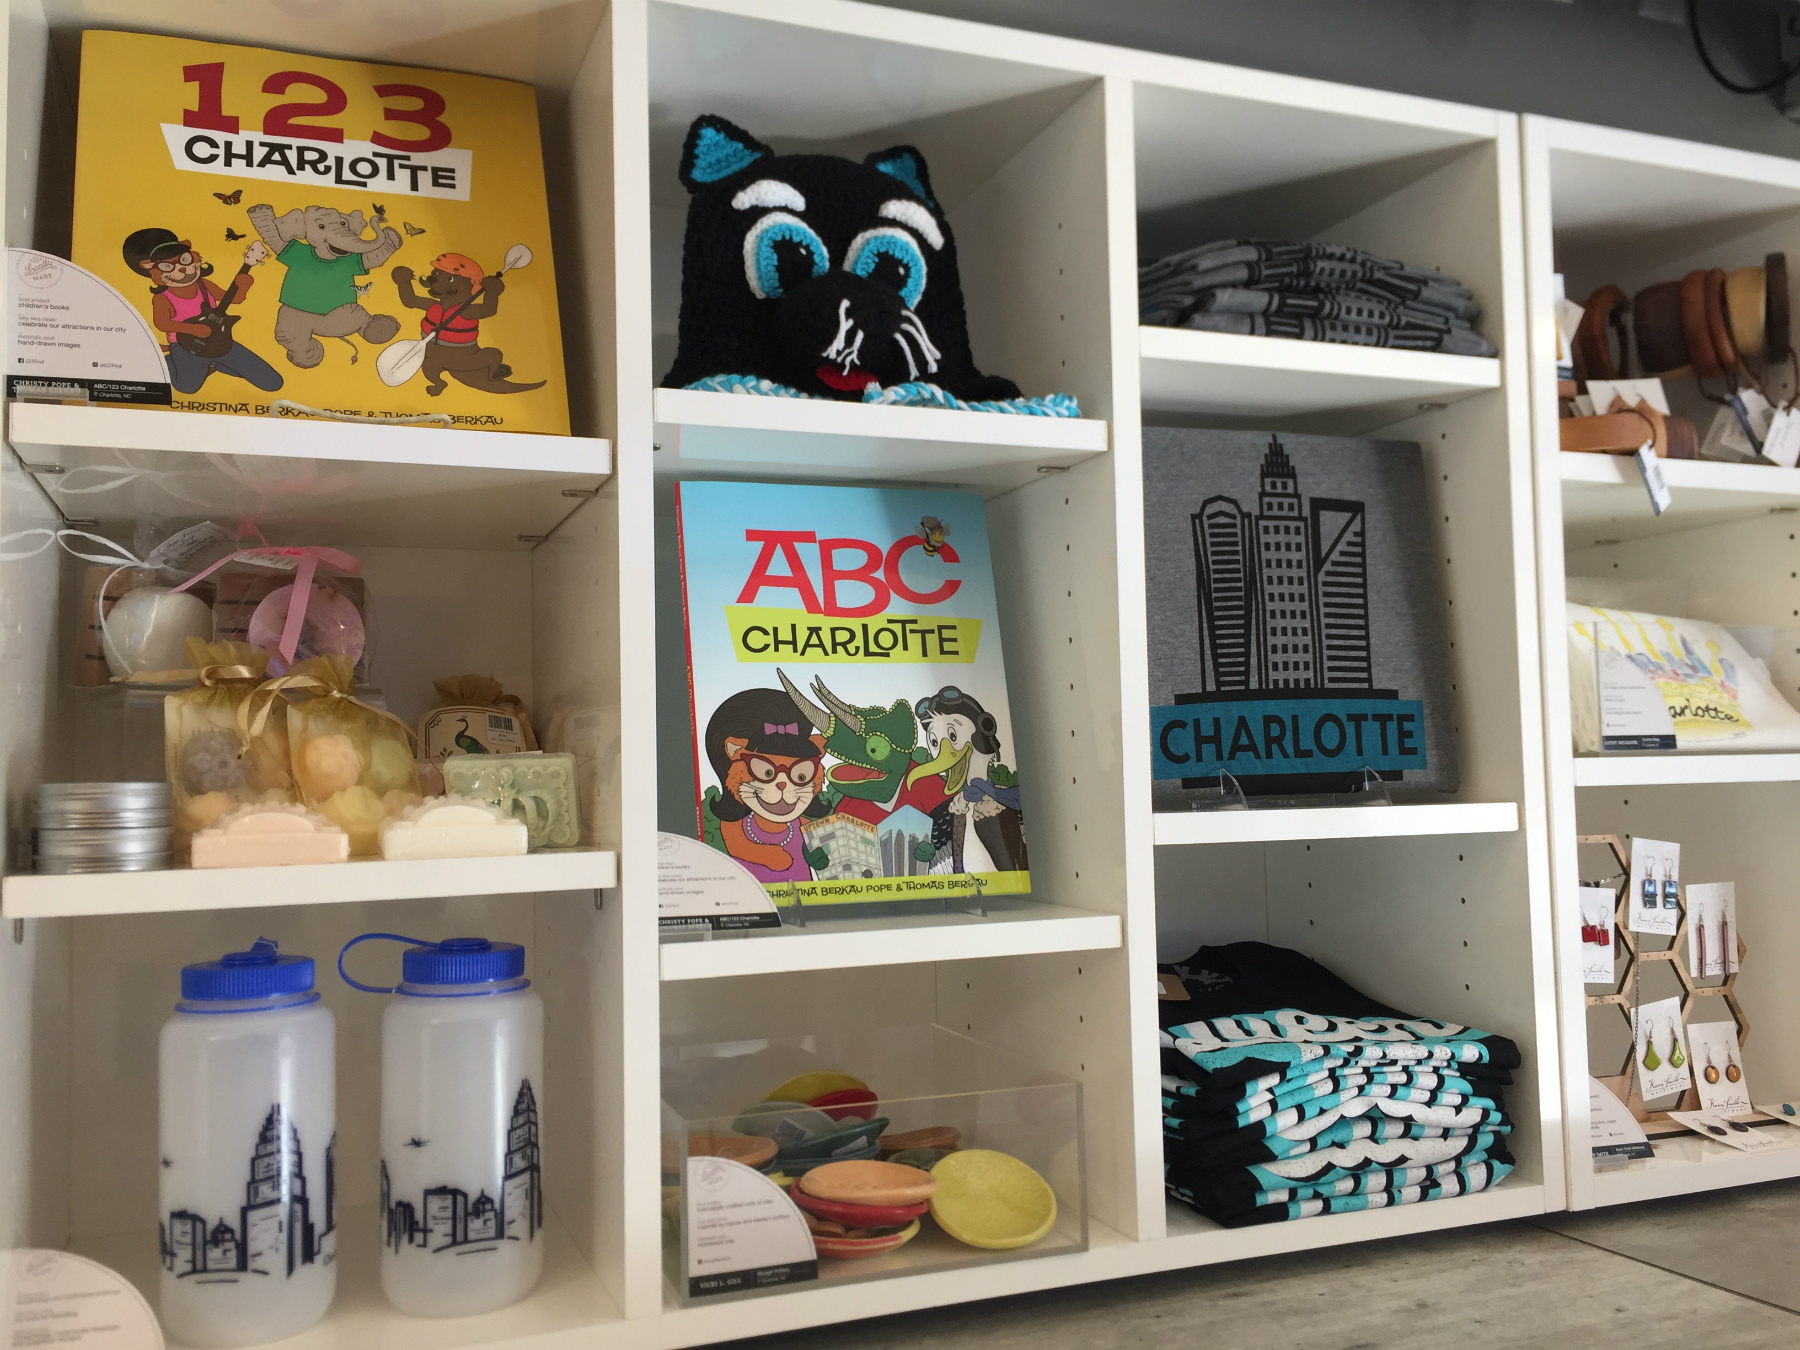 The Visitor Info Center Is The Go To Spot For Locally Made And Charlotte Centric  Retail Offerings And Gifts. Both The Uptown And Charlotte Convention Center  ...